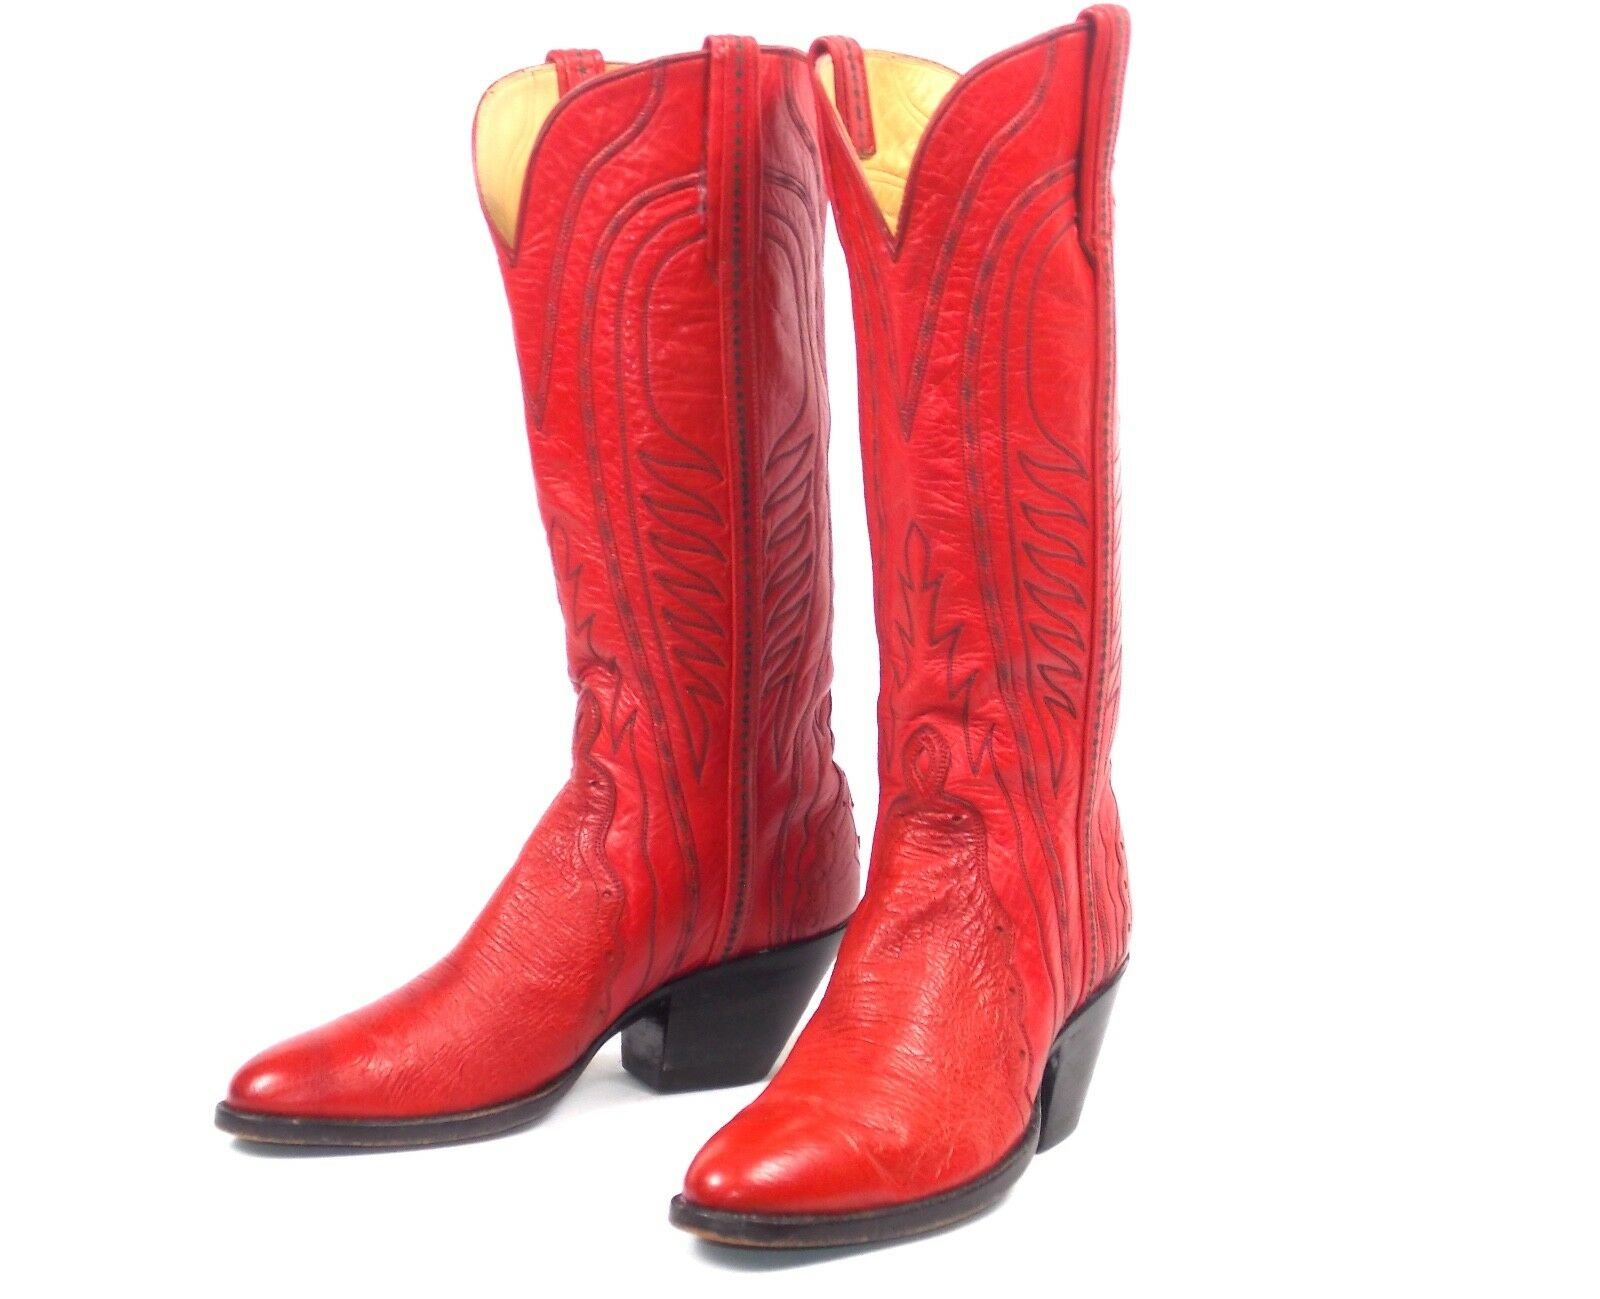 Custom Red Cowboy Boots - Wms Size 6B Tall Heel - Round Toes Triad T.O. Stanley